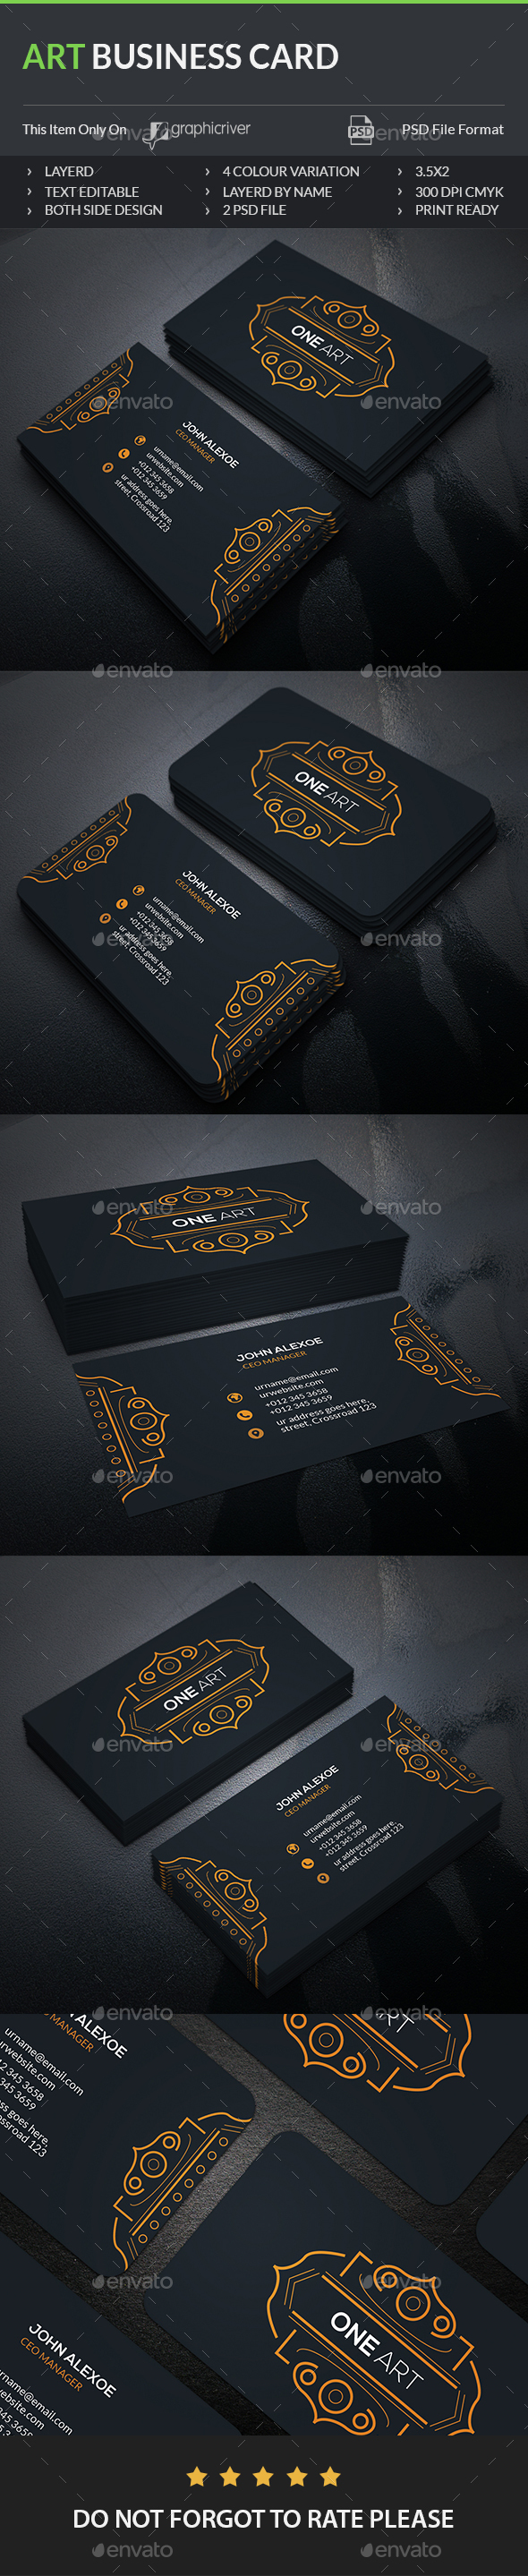 Art Business Card - Creative Business Cards